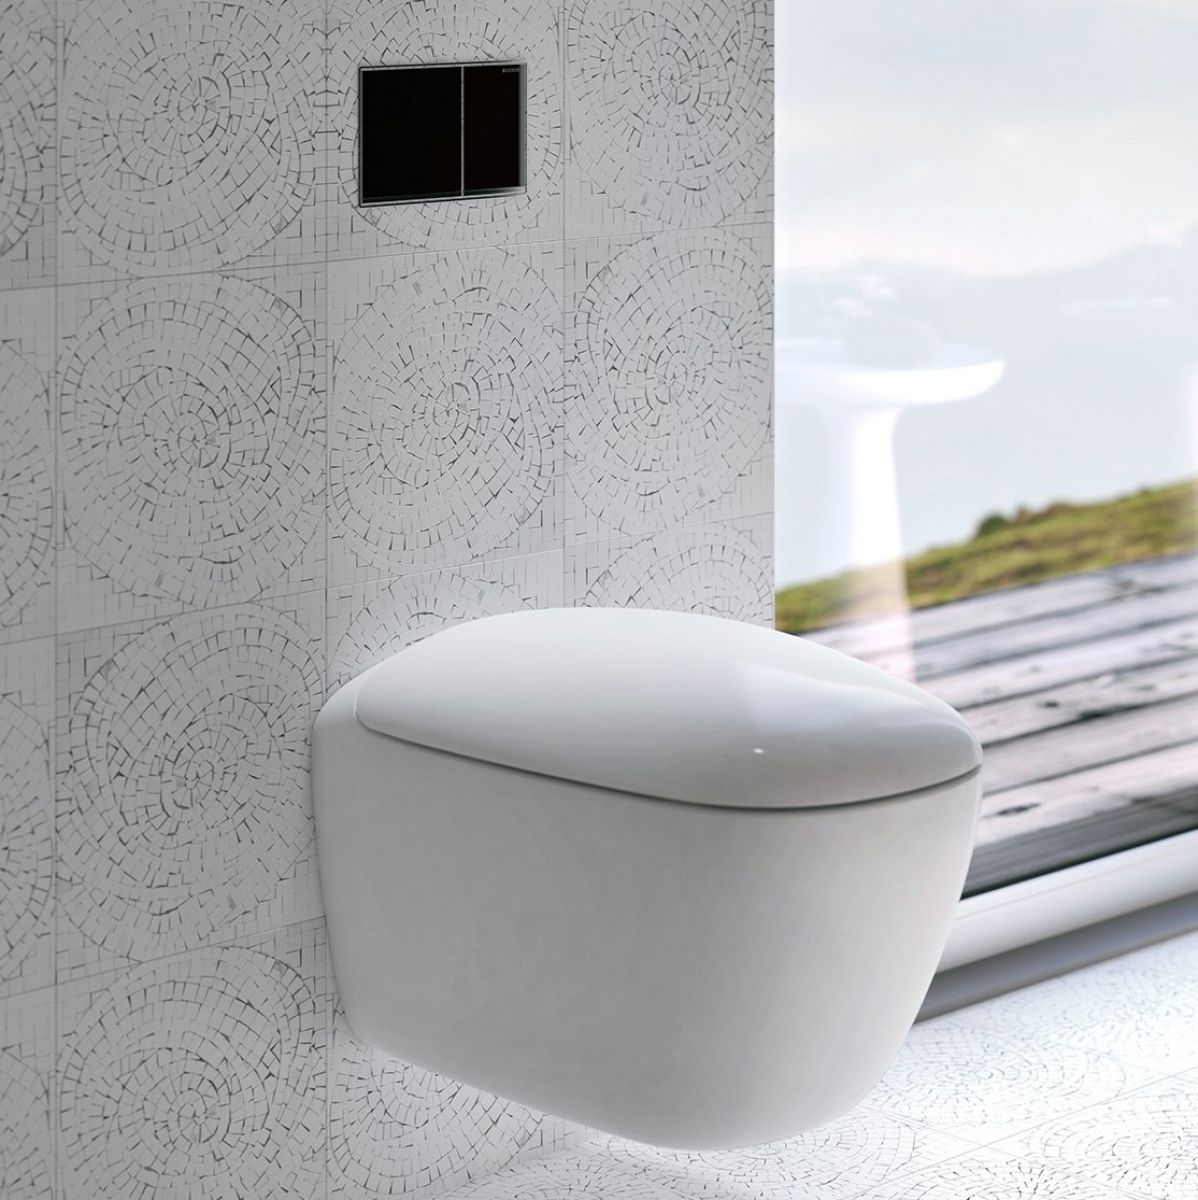 geberit citterio rimfree wall hung toilet uk bathrooms. Black Bedroom Furniture Sets. Home Design Ideas